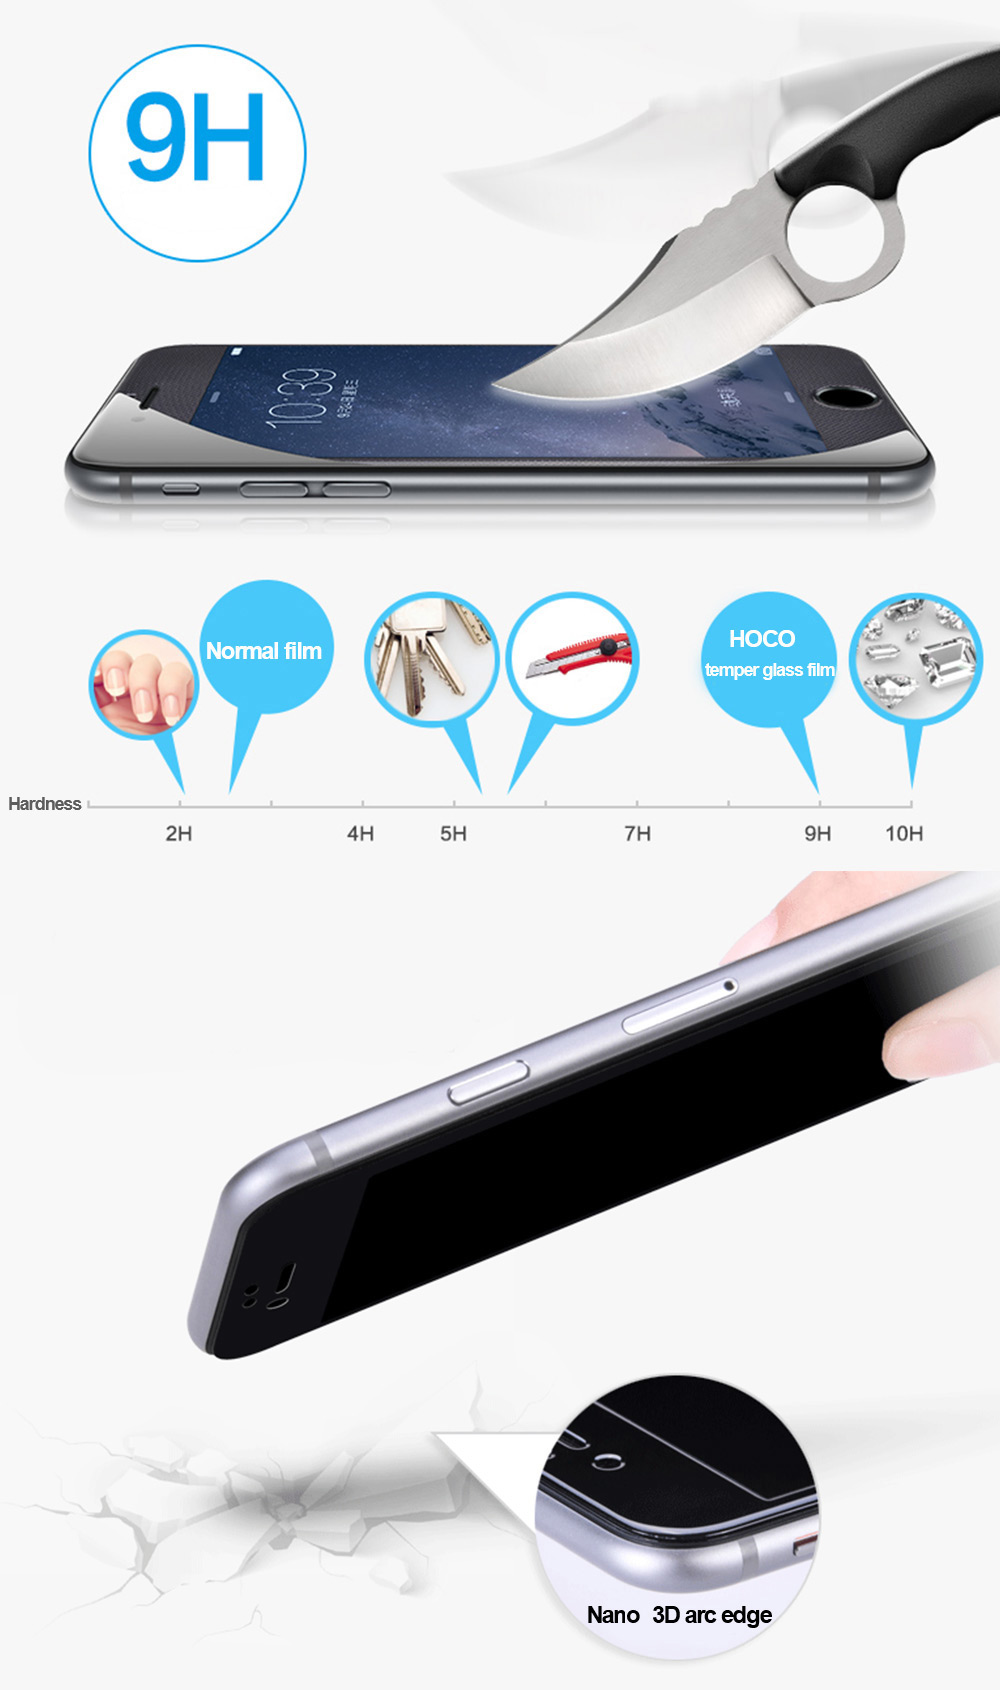 HOCO 9H 3D Full Screen Nano Tempered Glass Protective Film for iPhone 6 / 6S